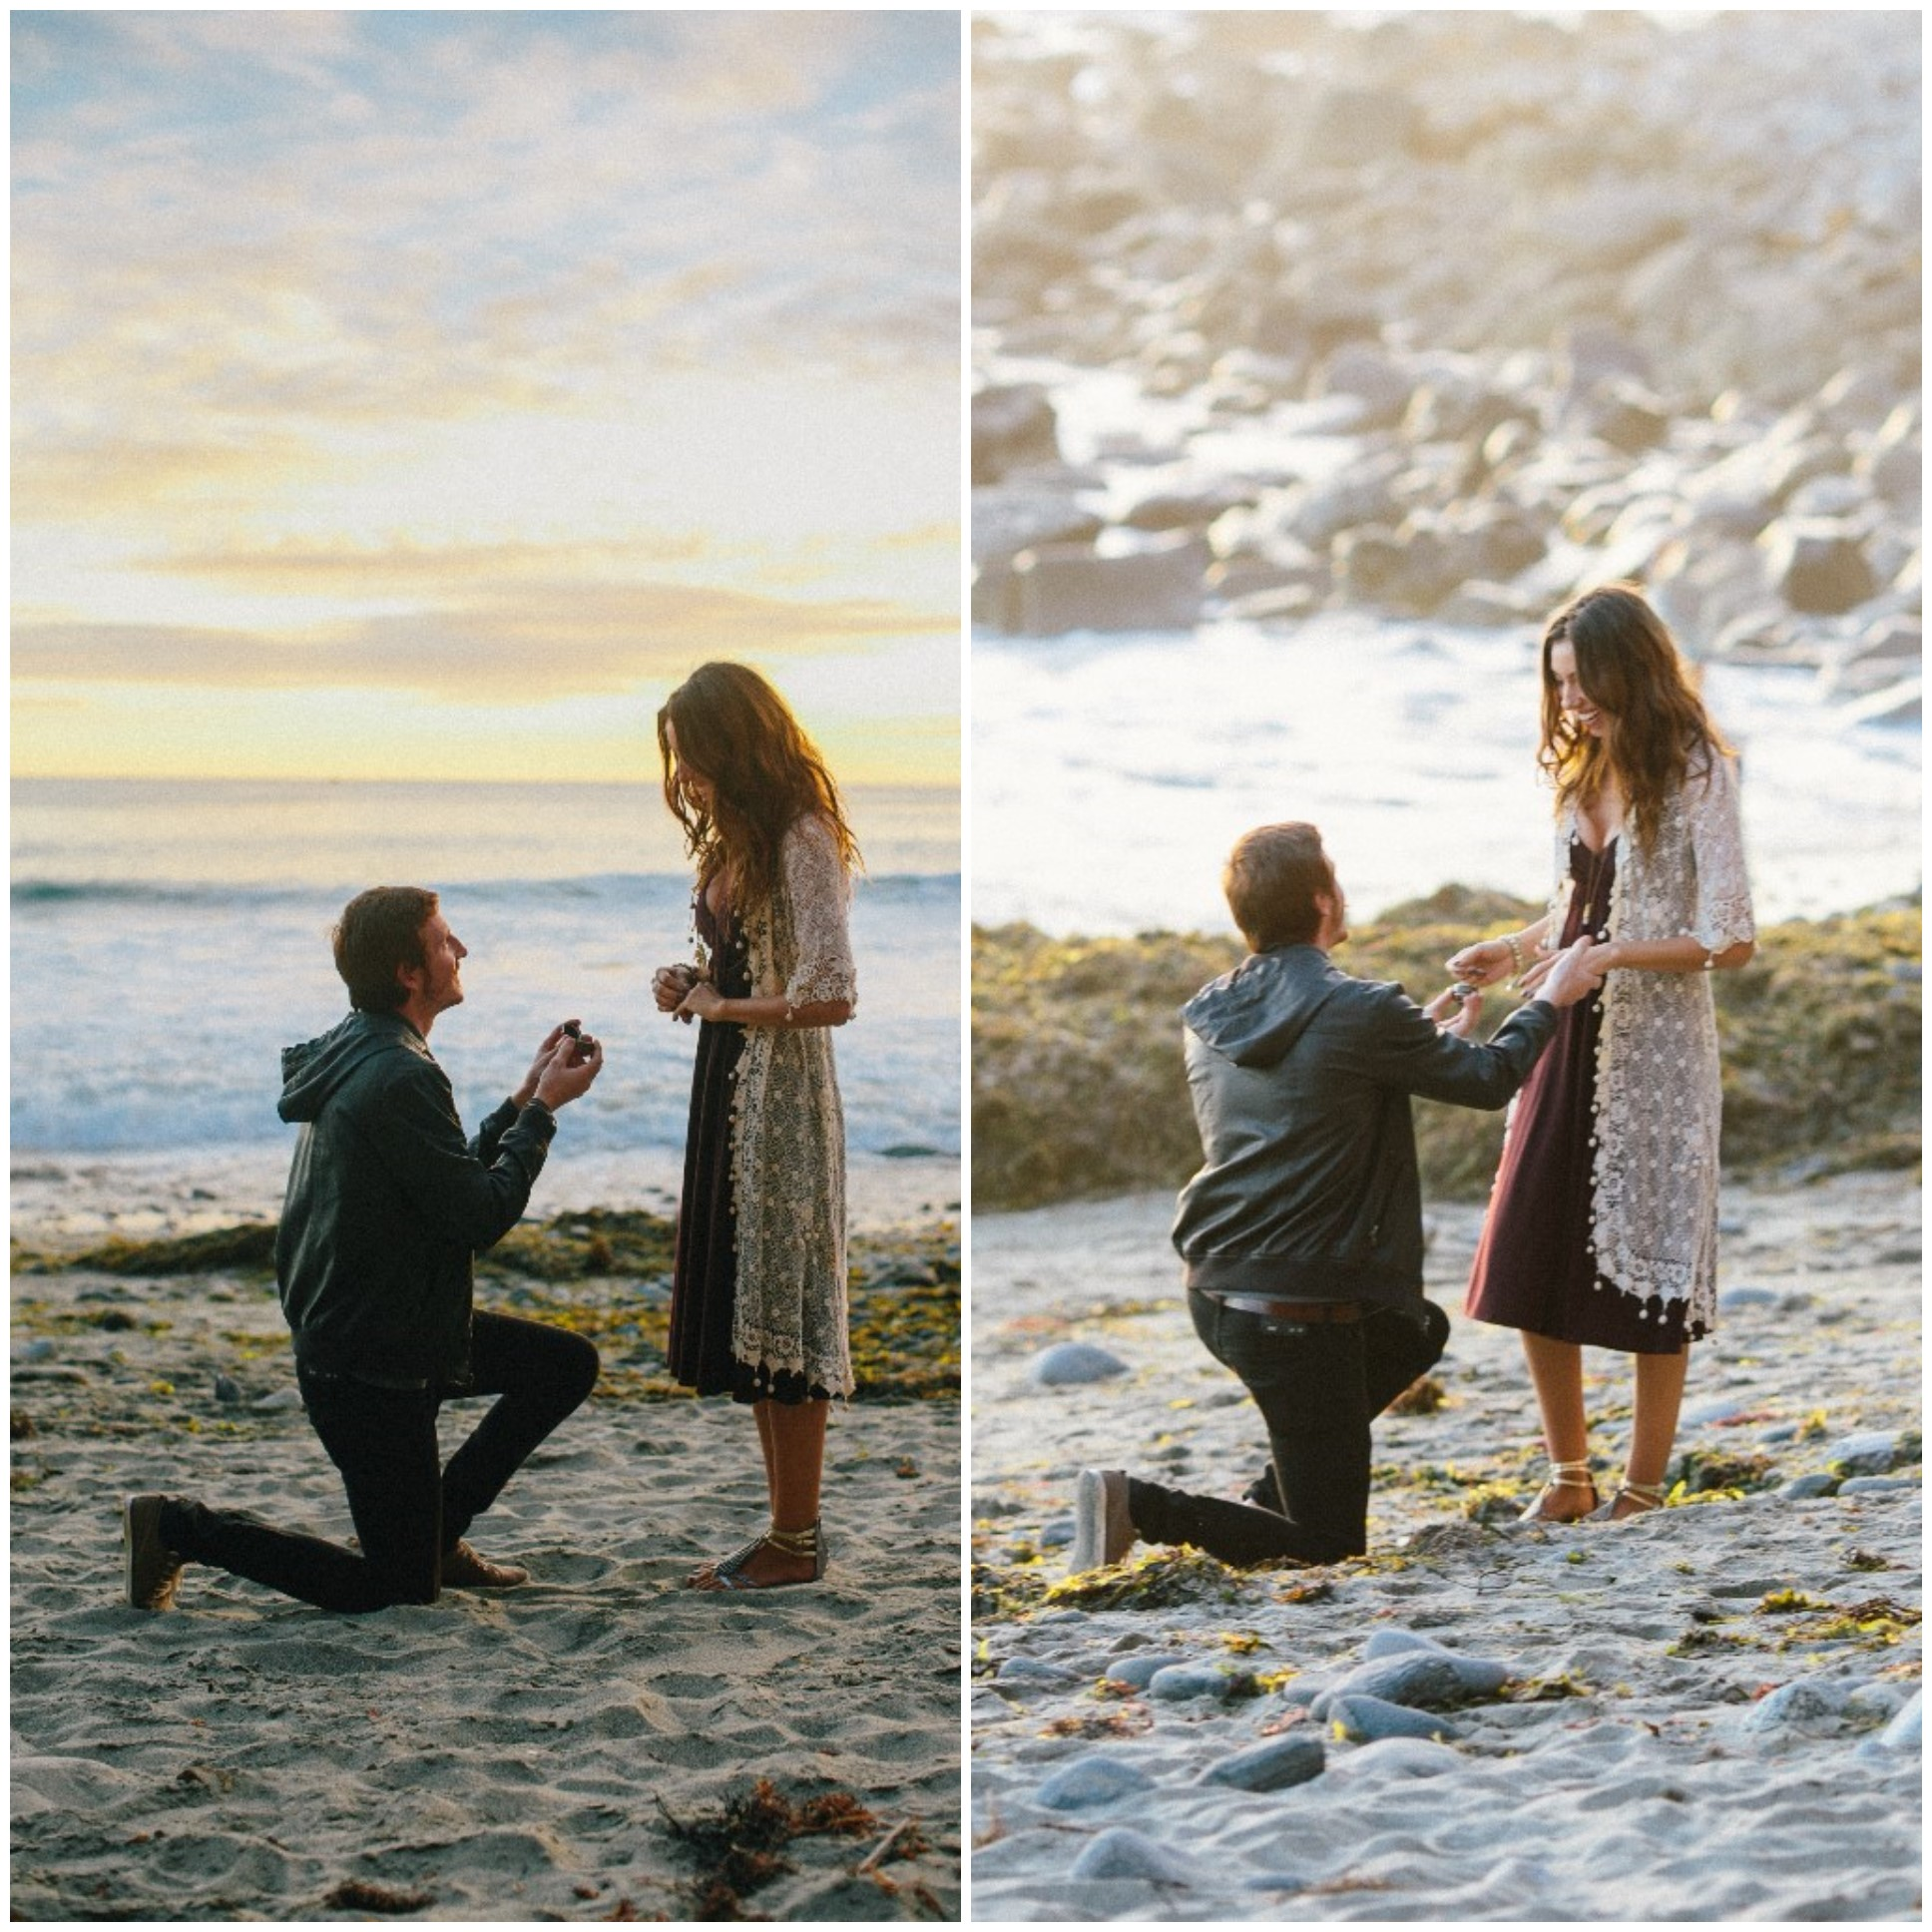 Image 2 of Ryan & Jasmin's California Coast Proposal